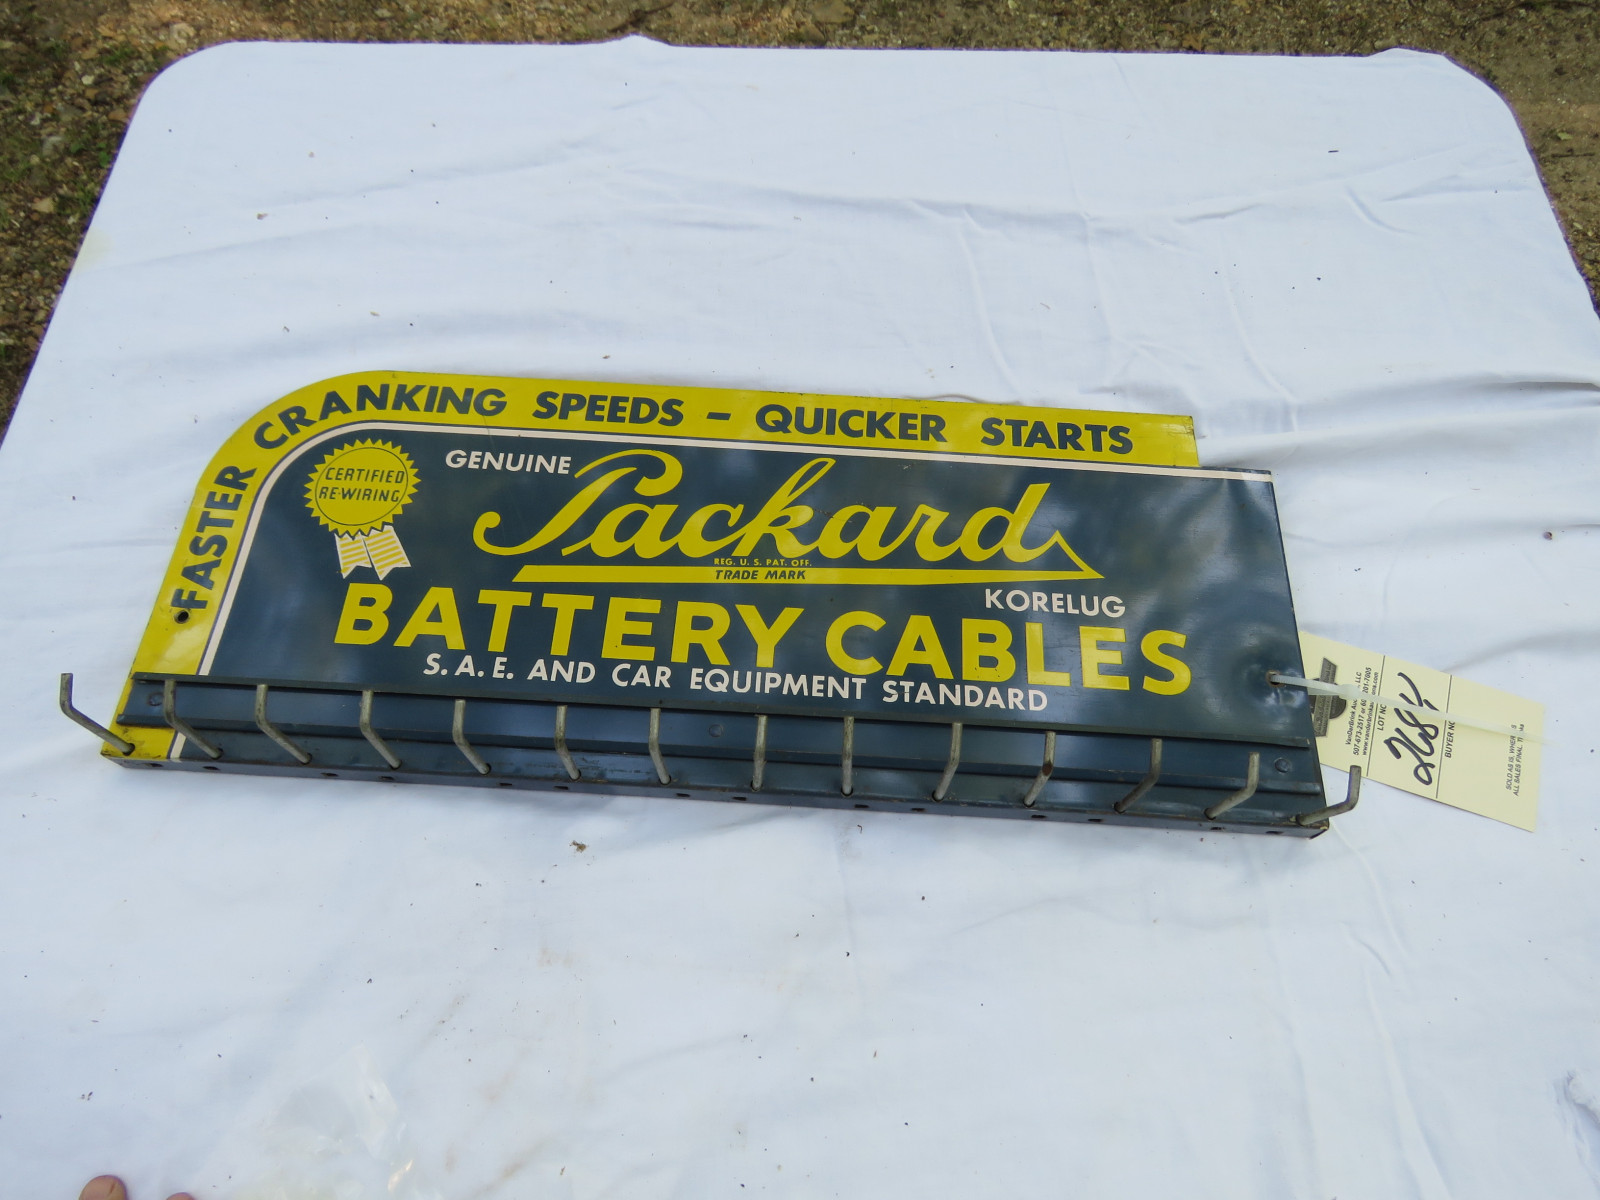 Packard Battery Cable Painted Tin Rack - Image 2